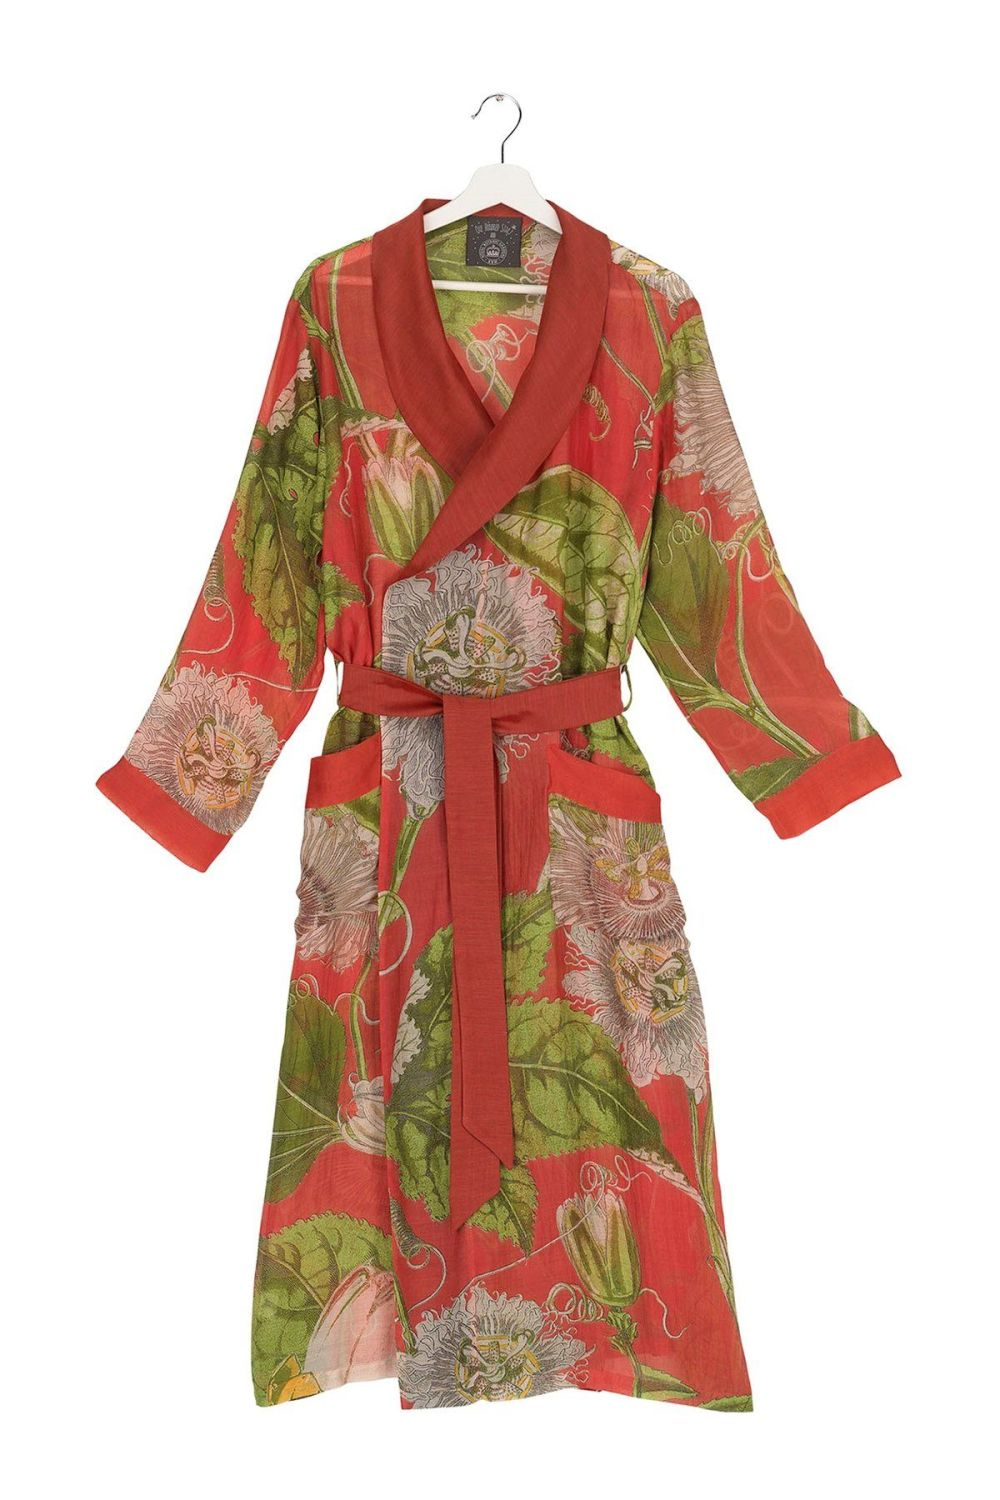 GOWN KEW PASSION FLOWER SCARLET RED